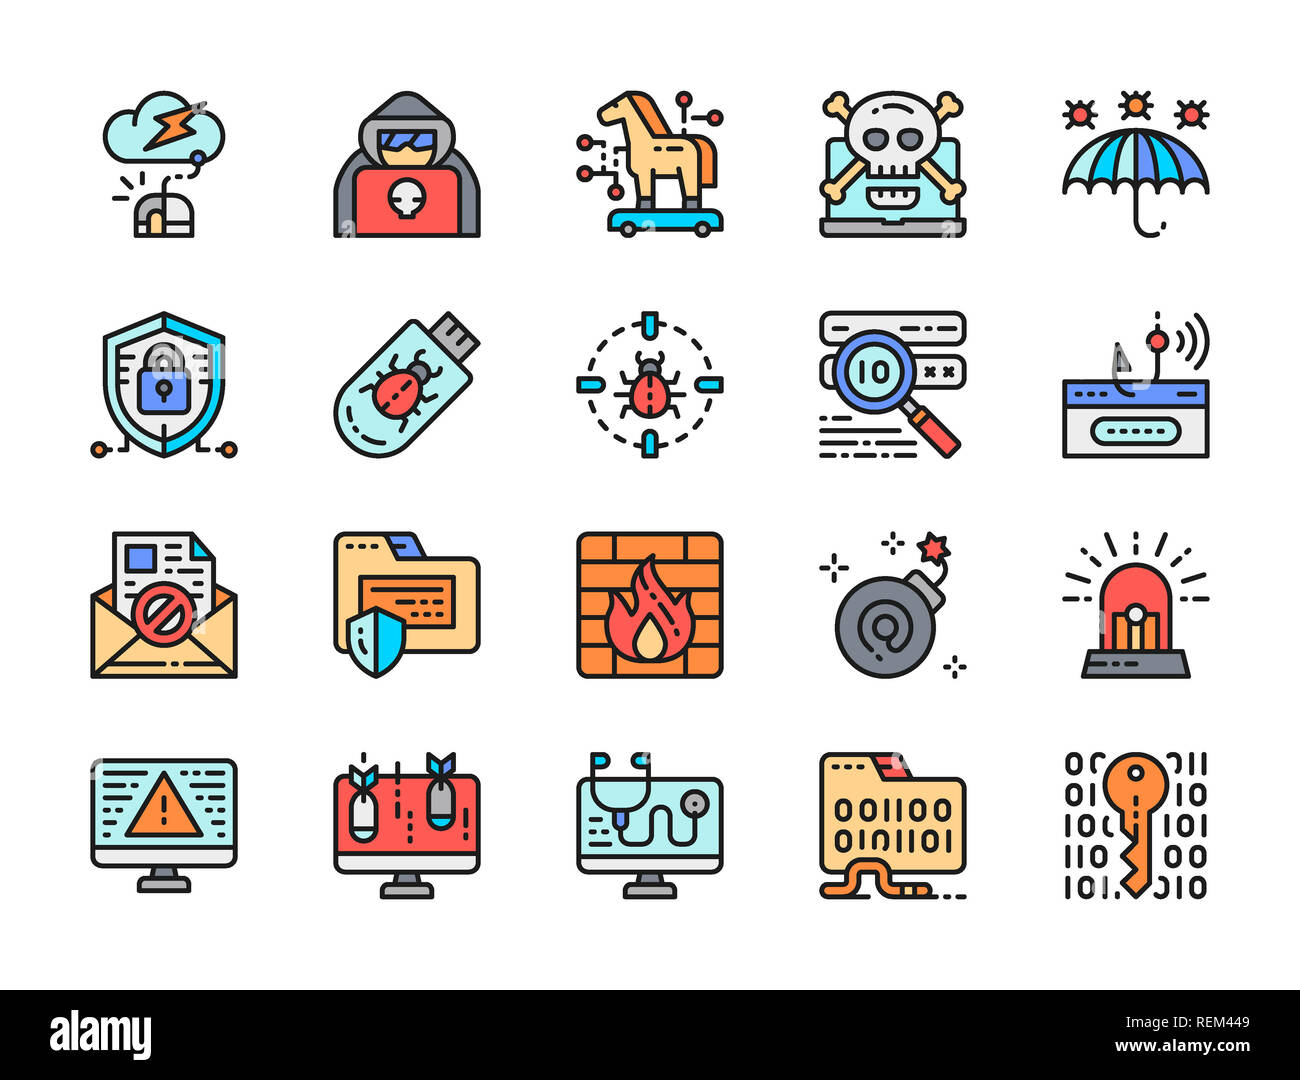 Set of hacking and cyber security flat color line icons. Hacker attack, spy agent, trojan horse, computer virus, phishing scam, cybercrime, antivirus. - Stock Image